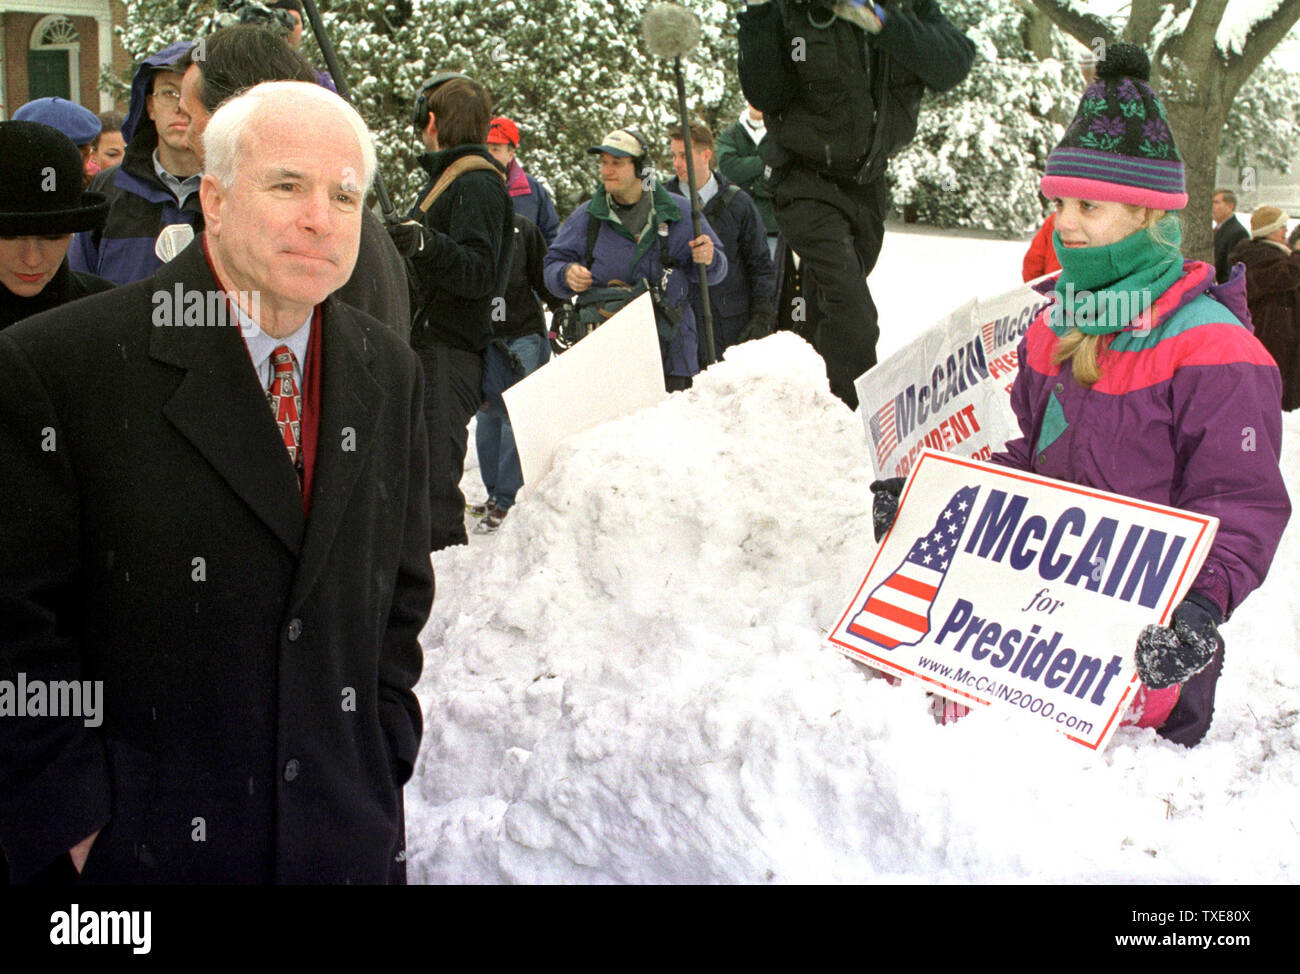 HAN2000013104 - 31 JANUARY, 2000 - HANOVER, NEW HAMPSHIRE, USA:  A young supporter waits on top of a snowbank to see Republican presidential candidate U.S. Senator John McCain of Arizona, left, walk by on his way back to the campaign bus after addressing Dartmouth College students in Hanover.  McCain made several quick stops across the state to thank supporters for their help on the final day of campaigning before New Hampshire's first in the nation primary.  lkm/Lee K. Marriner  UPI Stock Photo